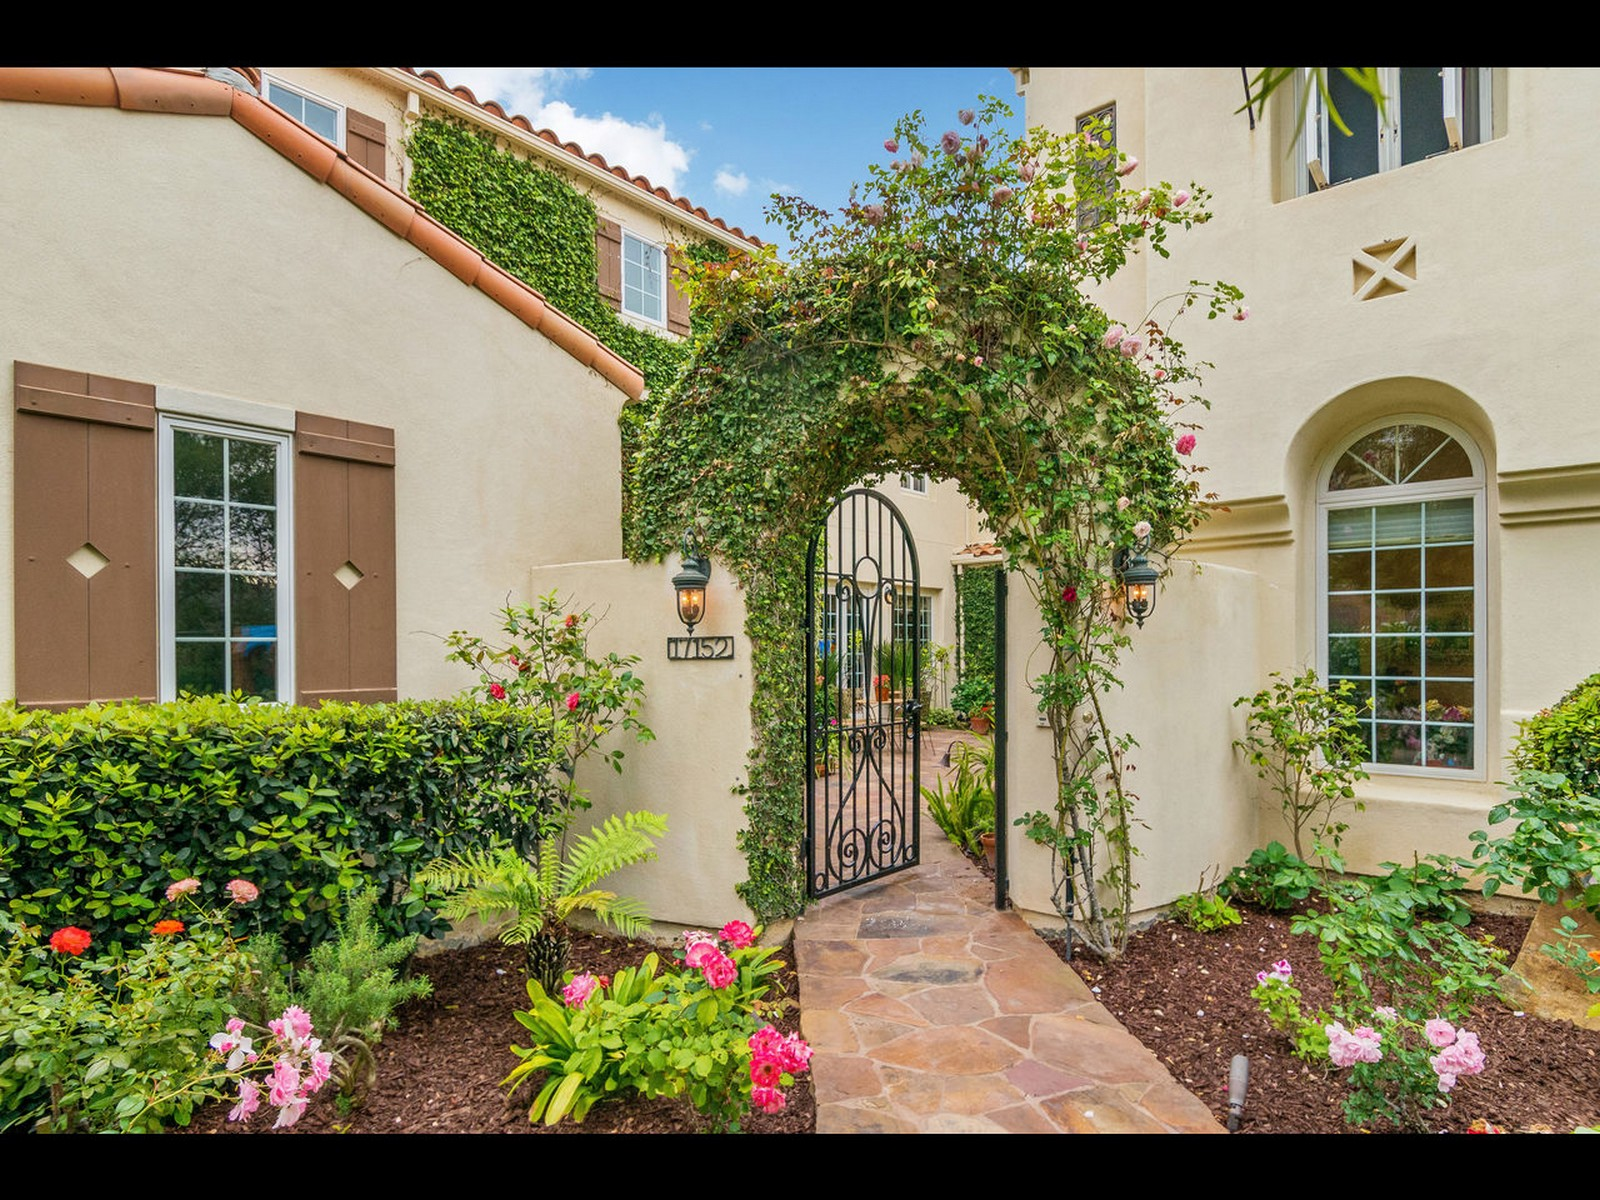 Single Family Home for Sale at 17152 Blue Skies Ridge San Diego, California, 92127 United States